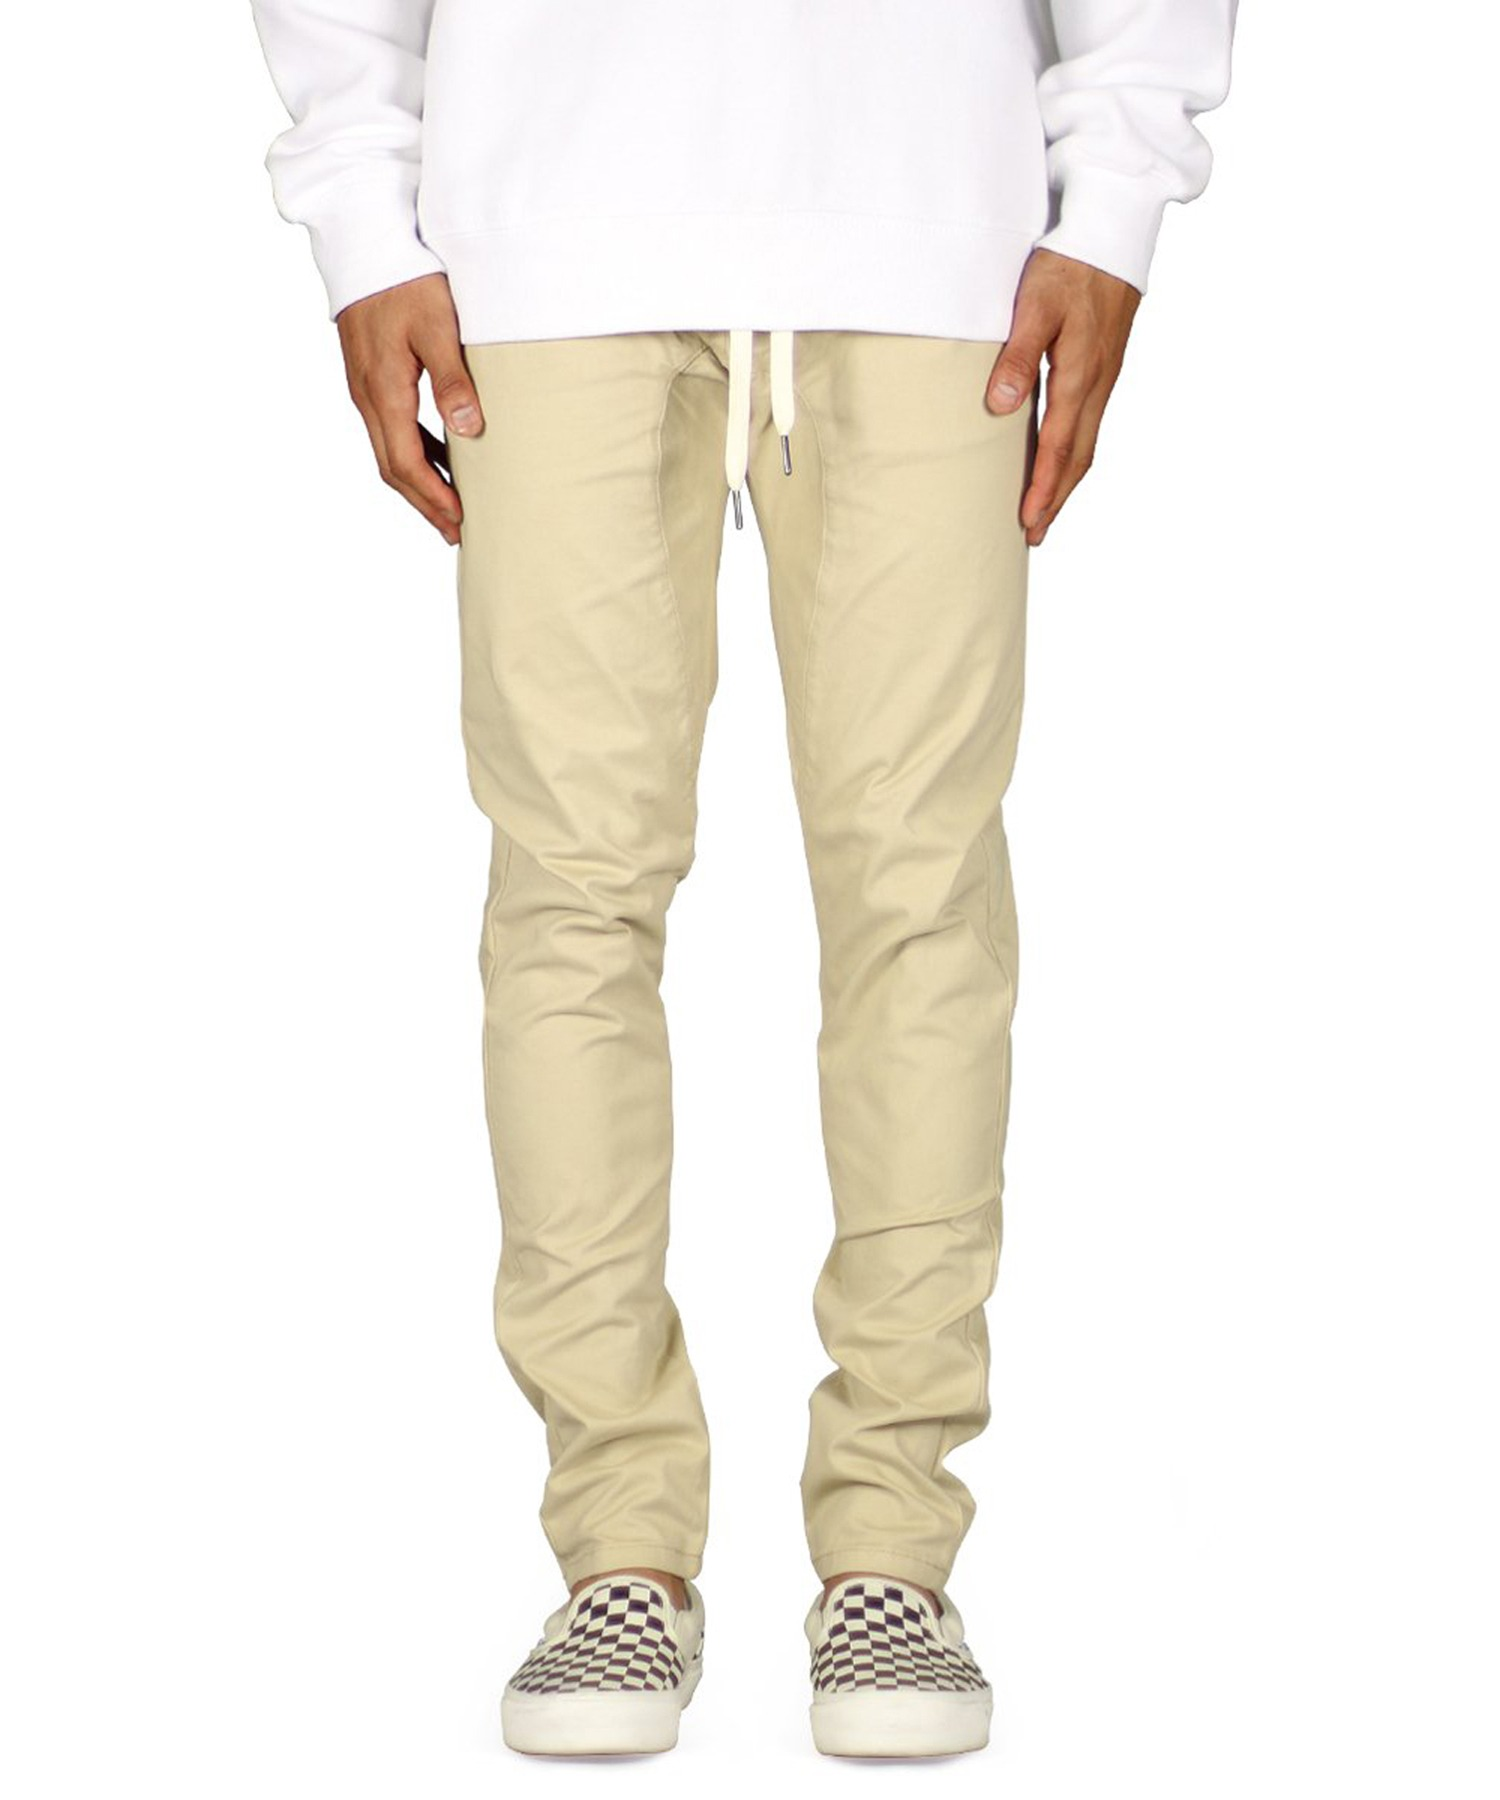 Khaki Drop Crotch Pant